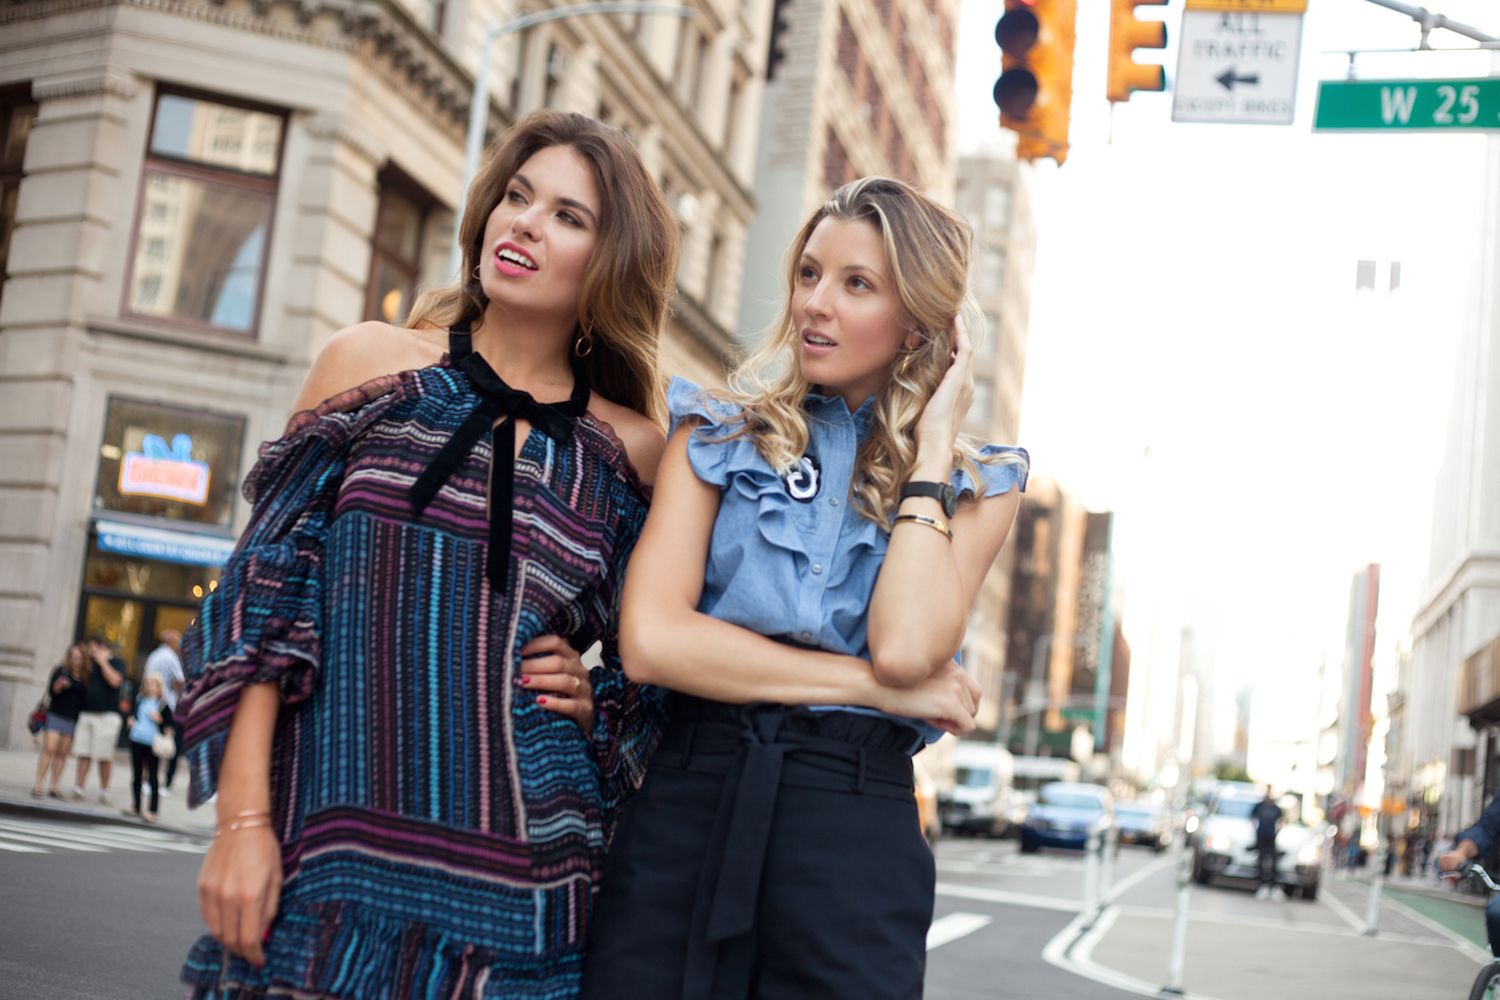 parker-y-allbuenothings-fashion-blog-nyc-streetstyle